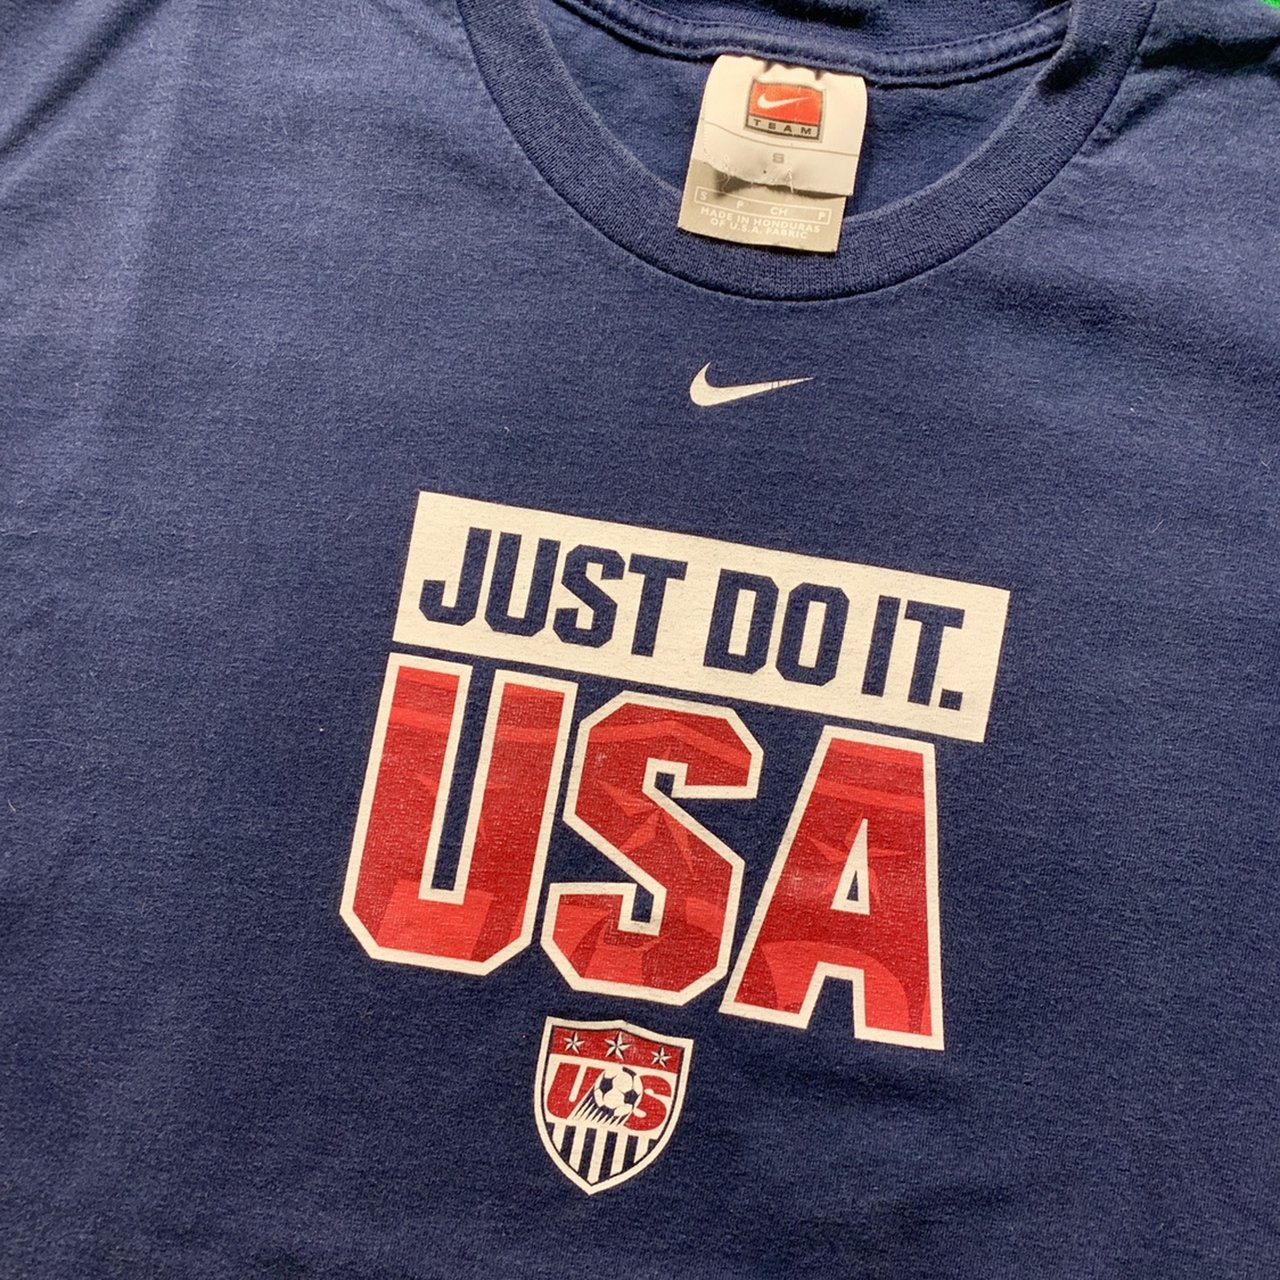 fe05bf3da Vintage Nike US Mens Soccer t-shirt! Just Do It. Navy faded. - Depop